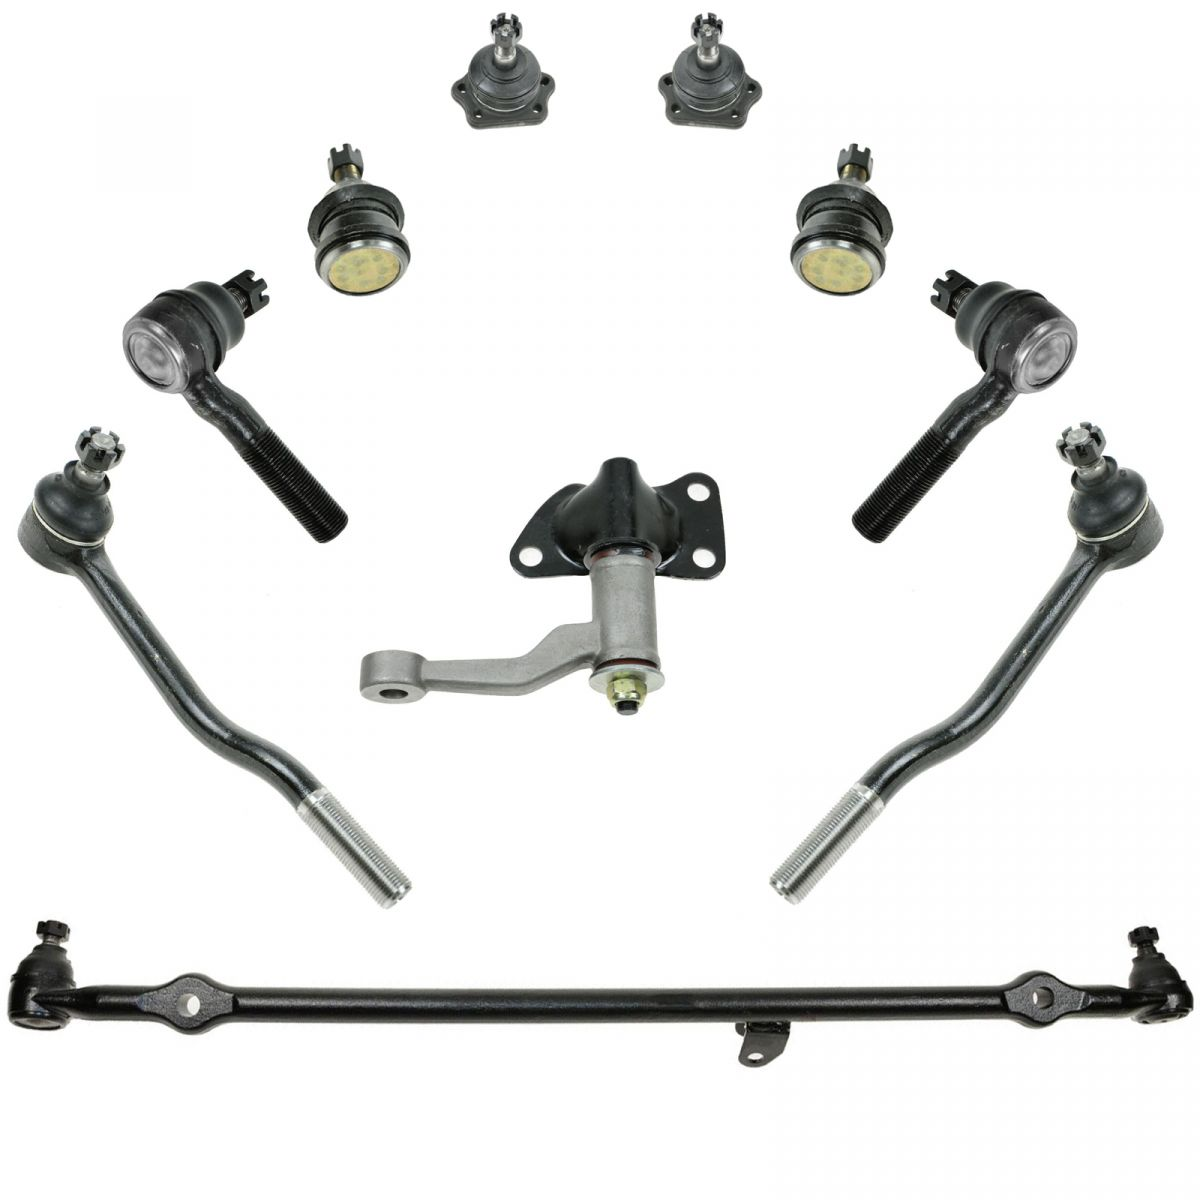 10 Piece Front Suspension Kit for 86-97 Nissan D21